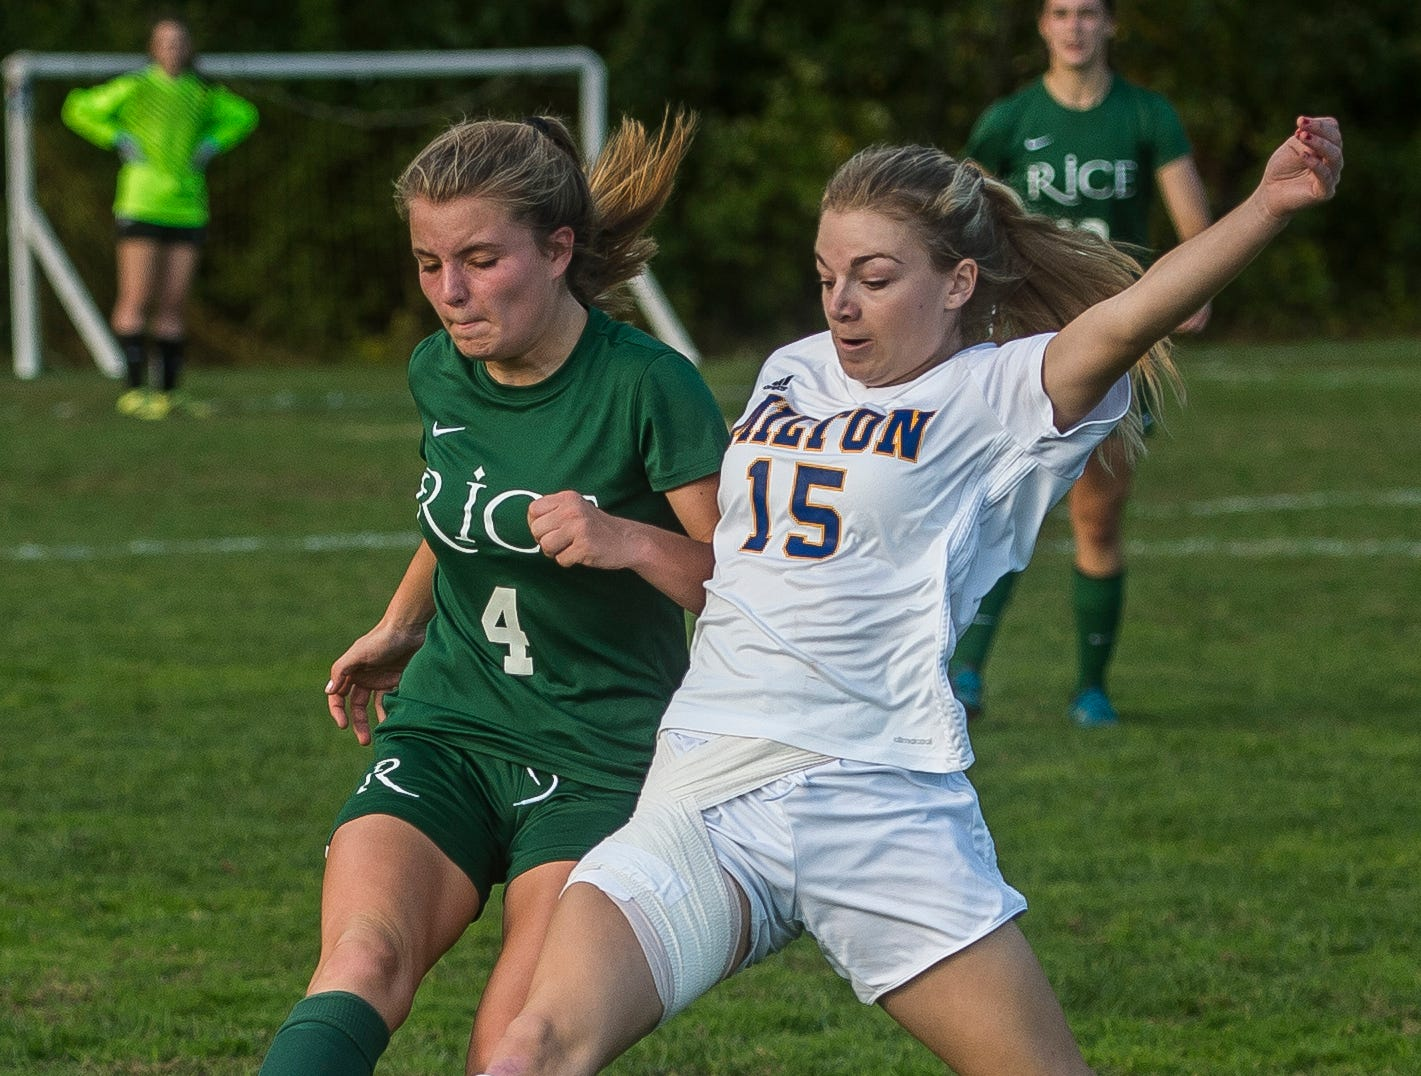 Rice #4 Emma Blanck fights for the ball against Milton #15 Emma Wennar during their girl's high school soccer game in South Burlington on Wednesday, Oct. 10, 2018. Milton won, 2-1.